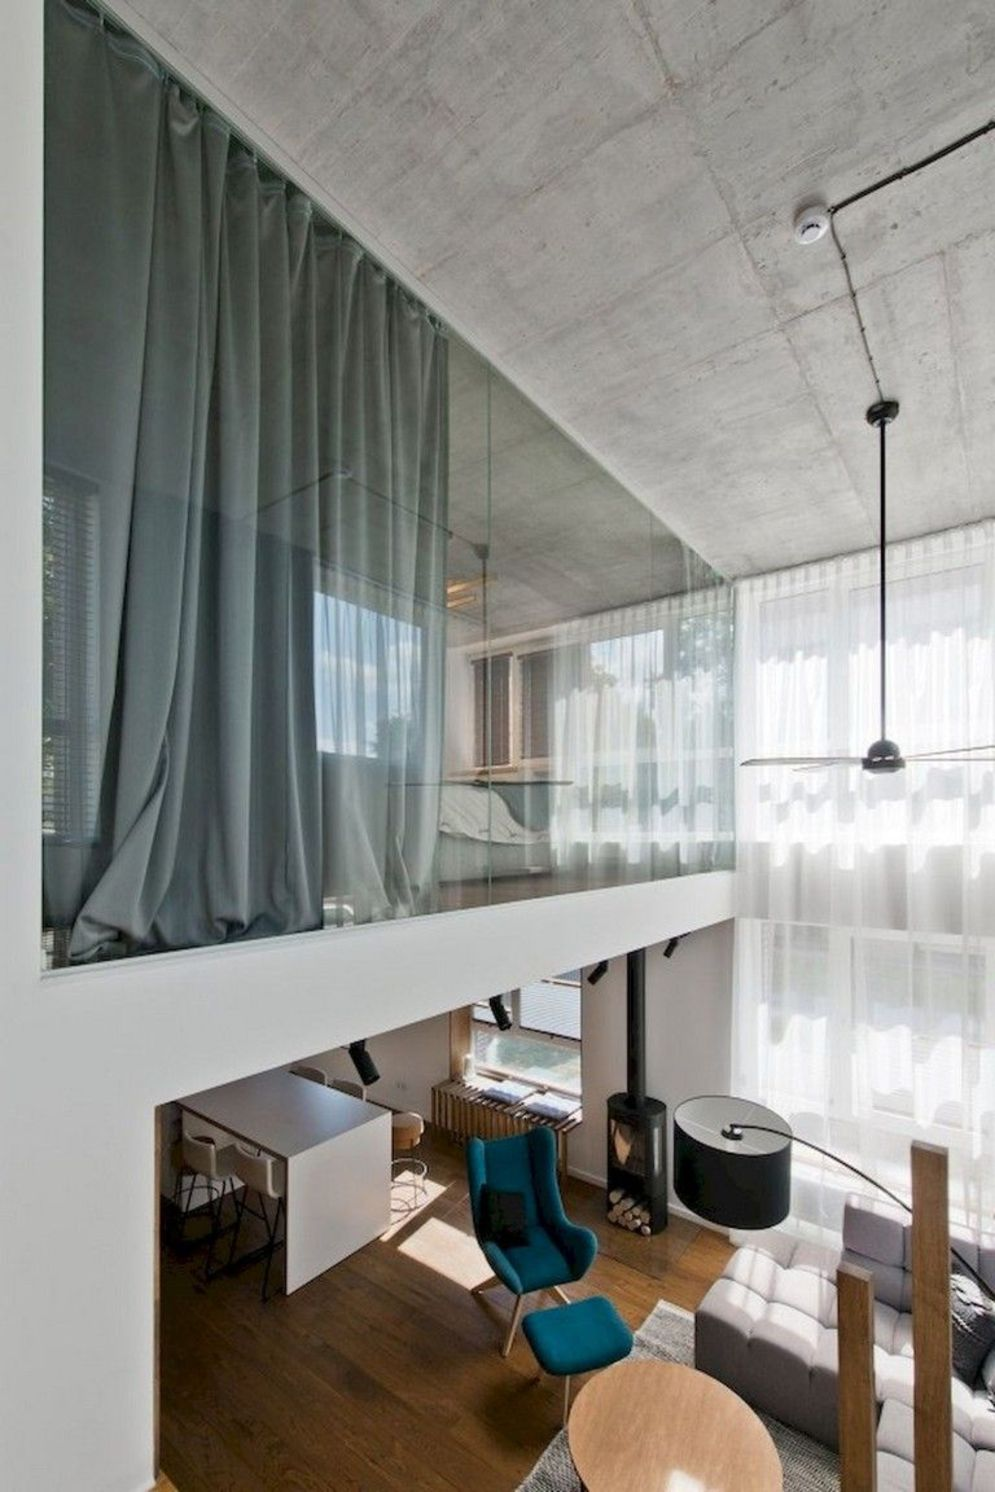 Limitless interior schemes with clever glass partition enlarging wide interior vibes Image 32